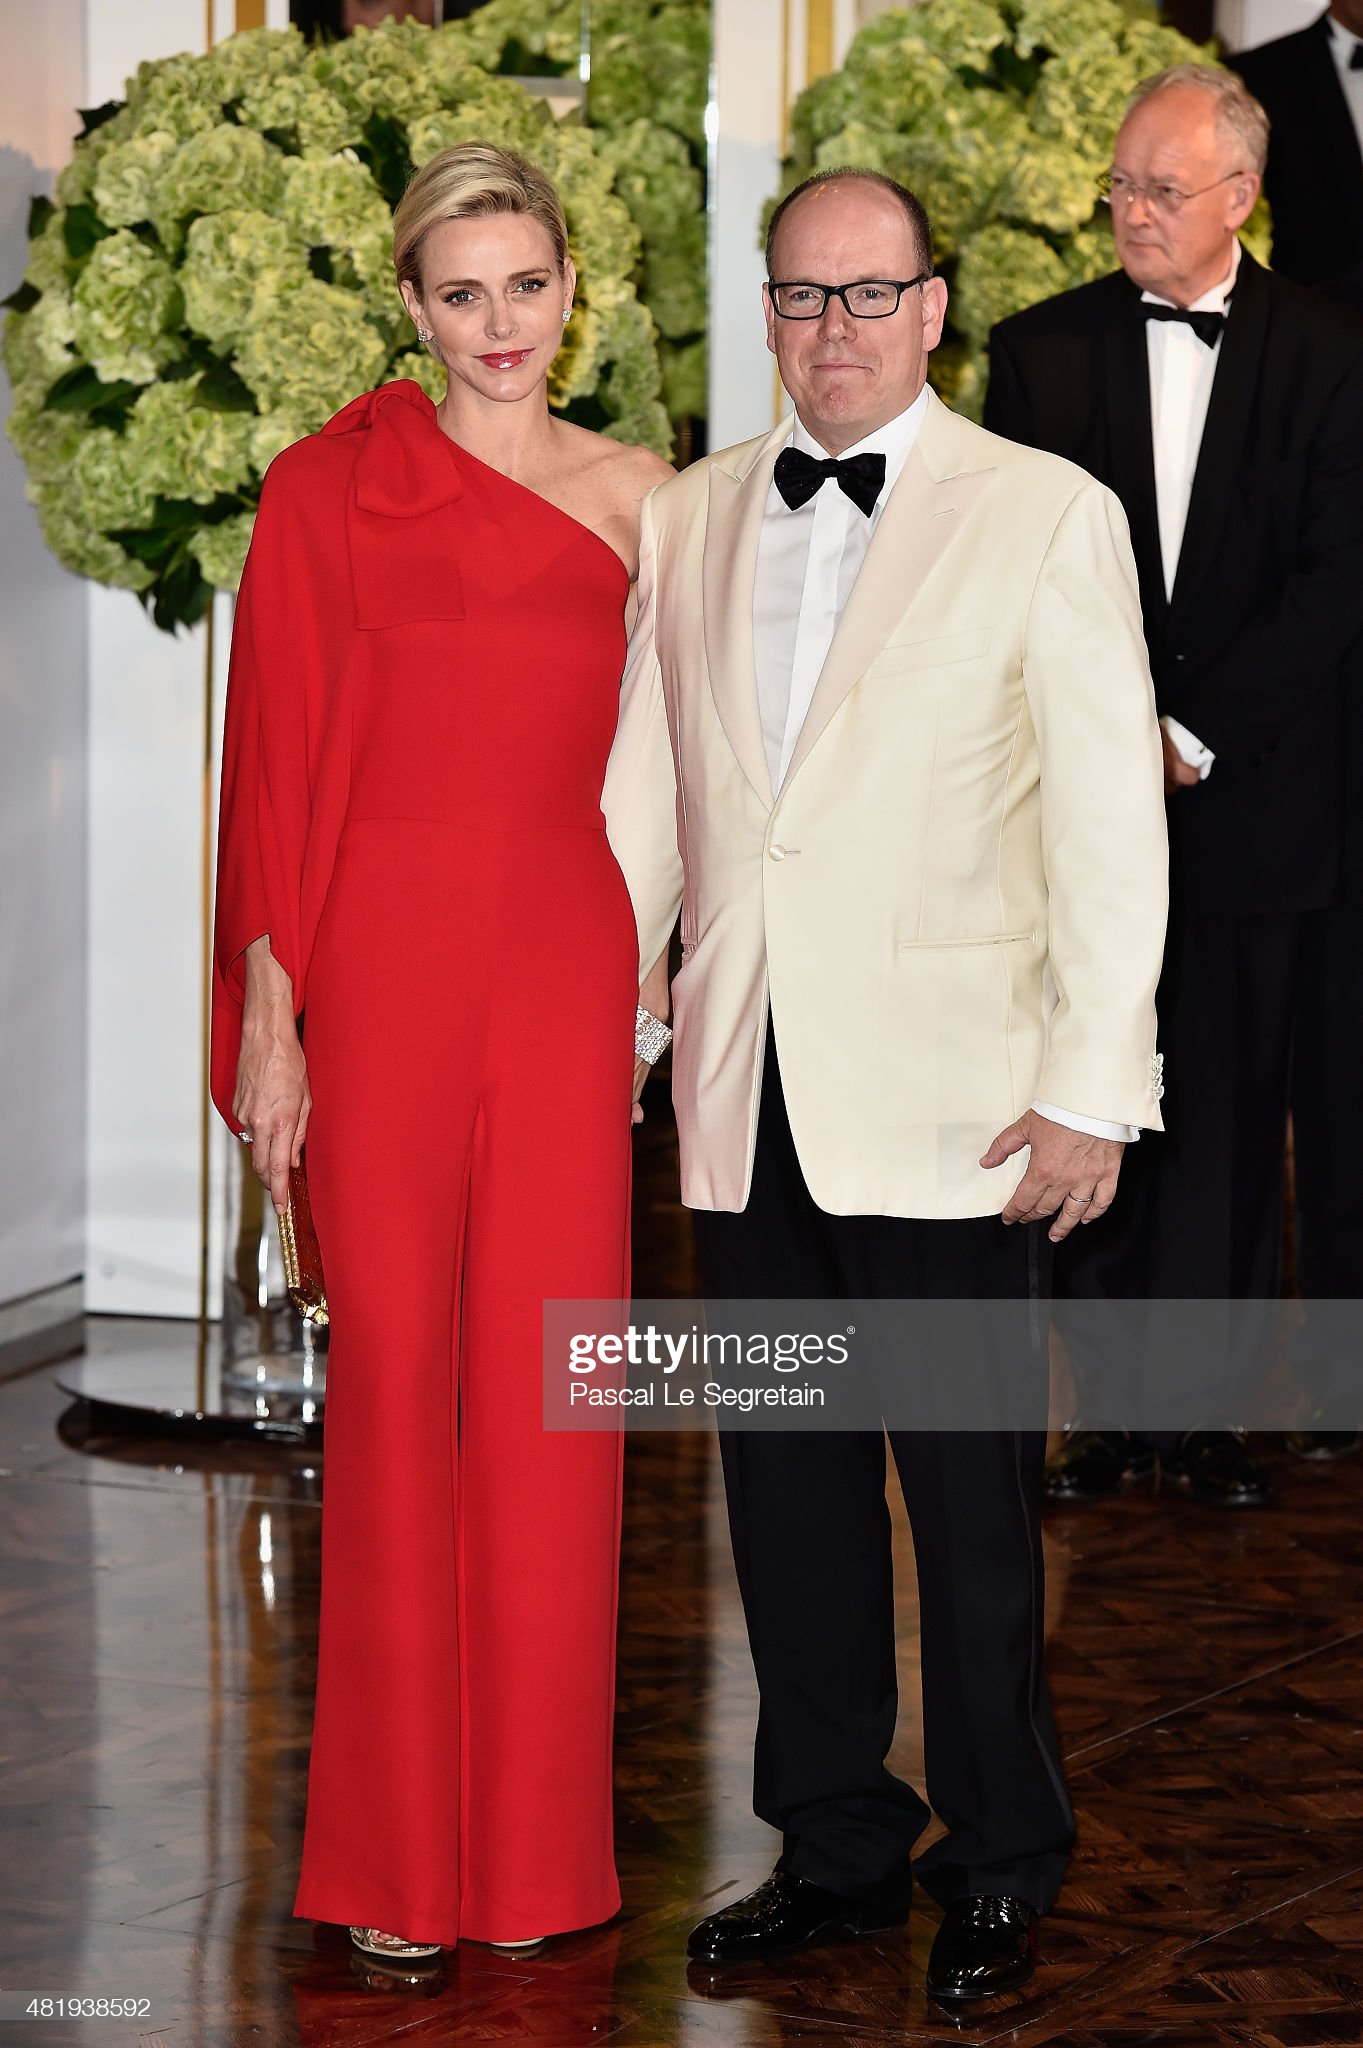 Monaco Red Cross Ball Gala : News Photo